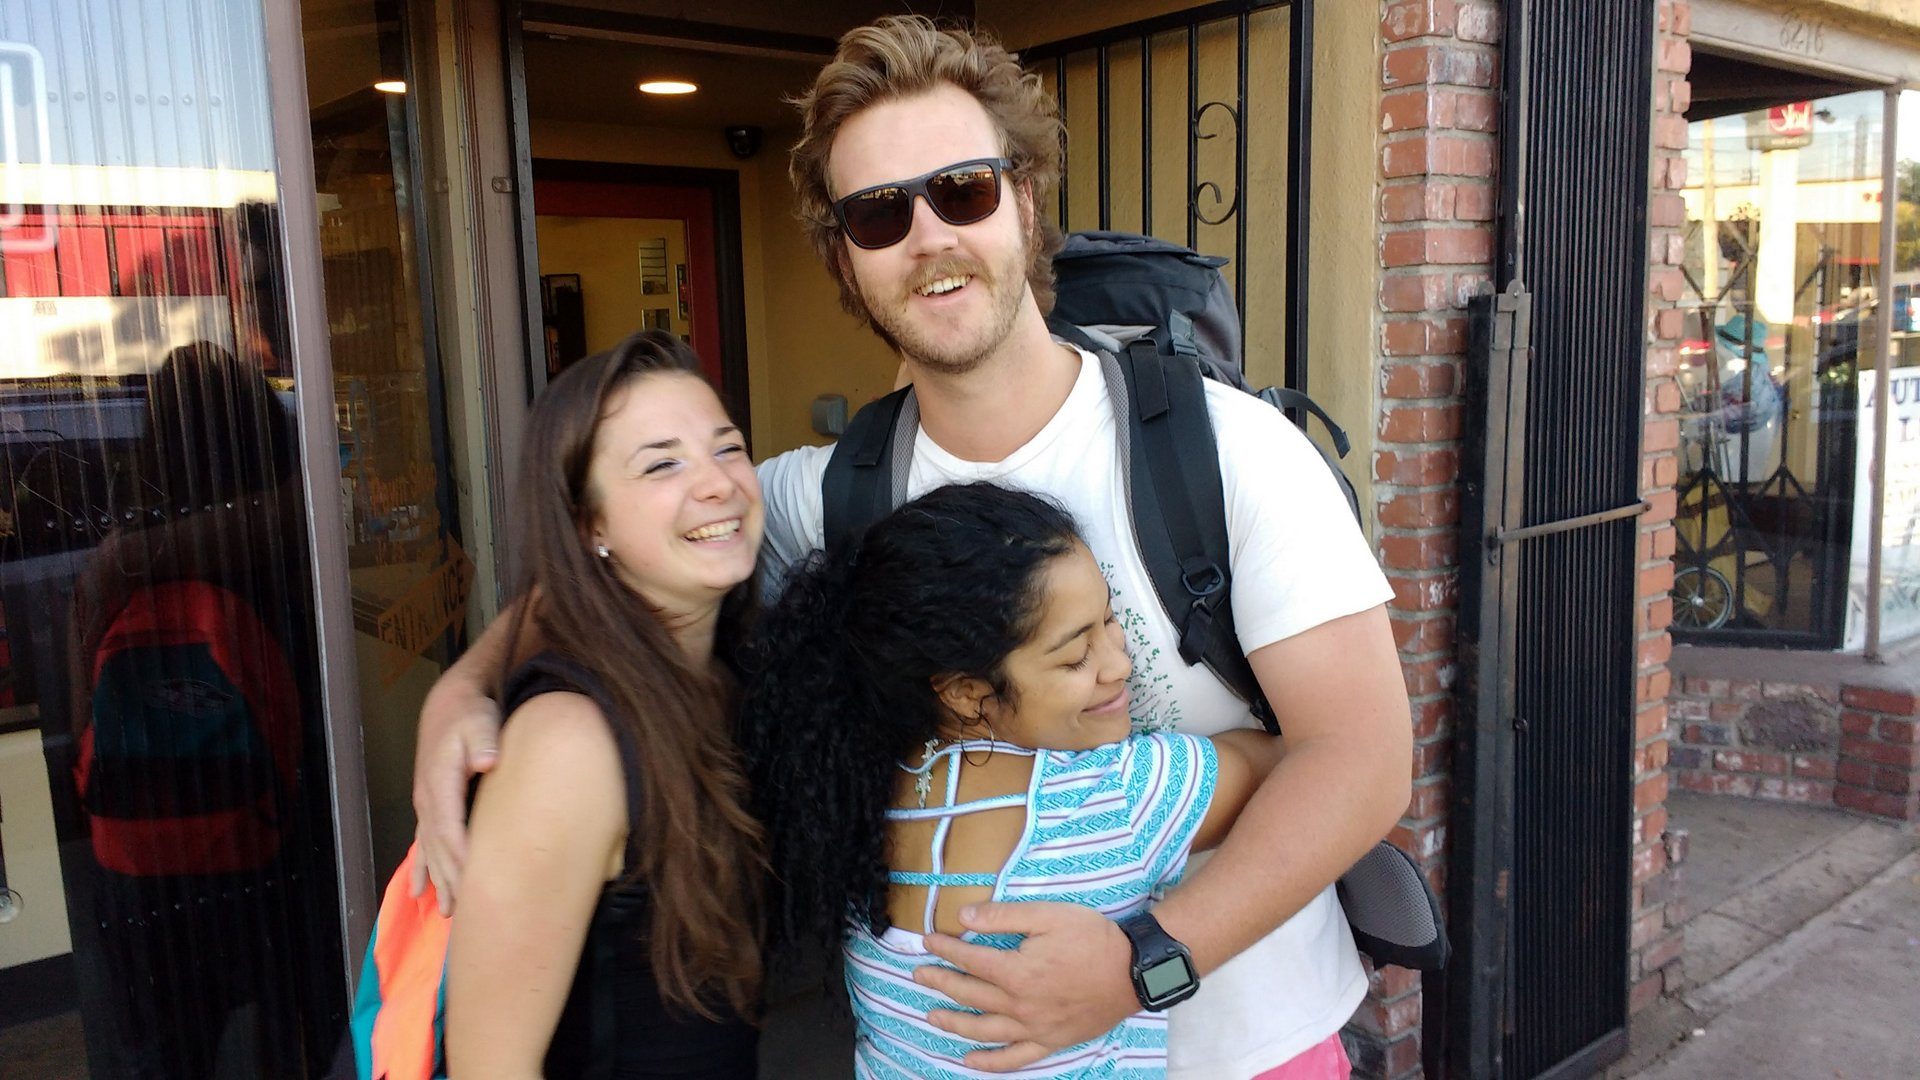 Tete, Lucas & Eleo hugging outside the Pawn Shop